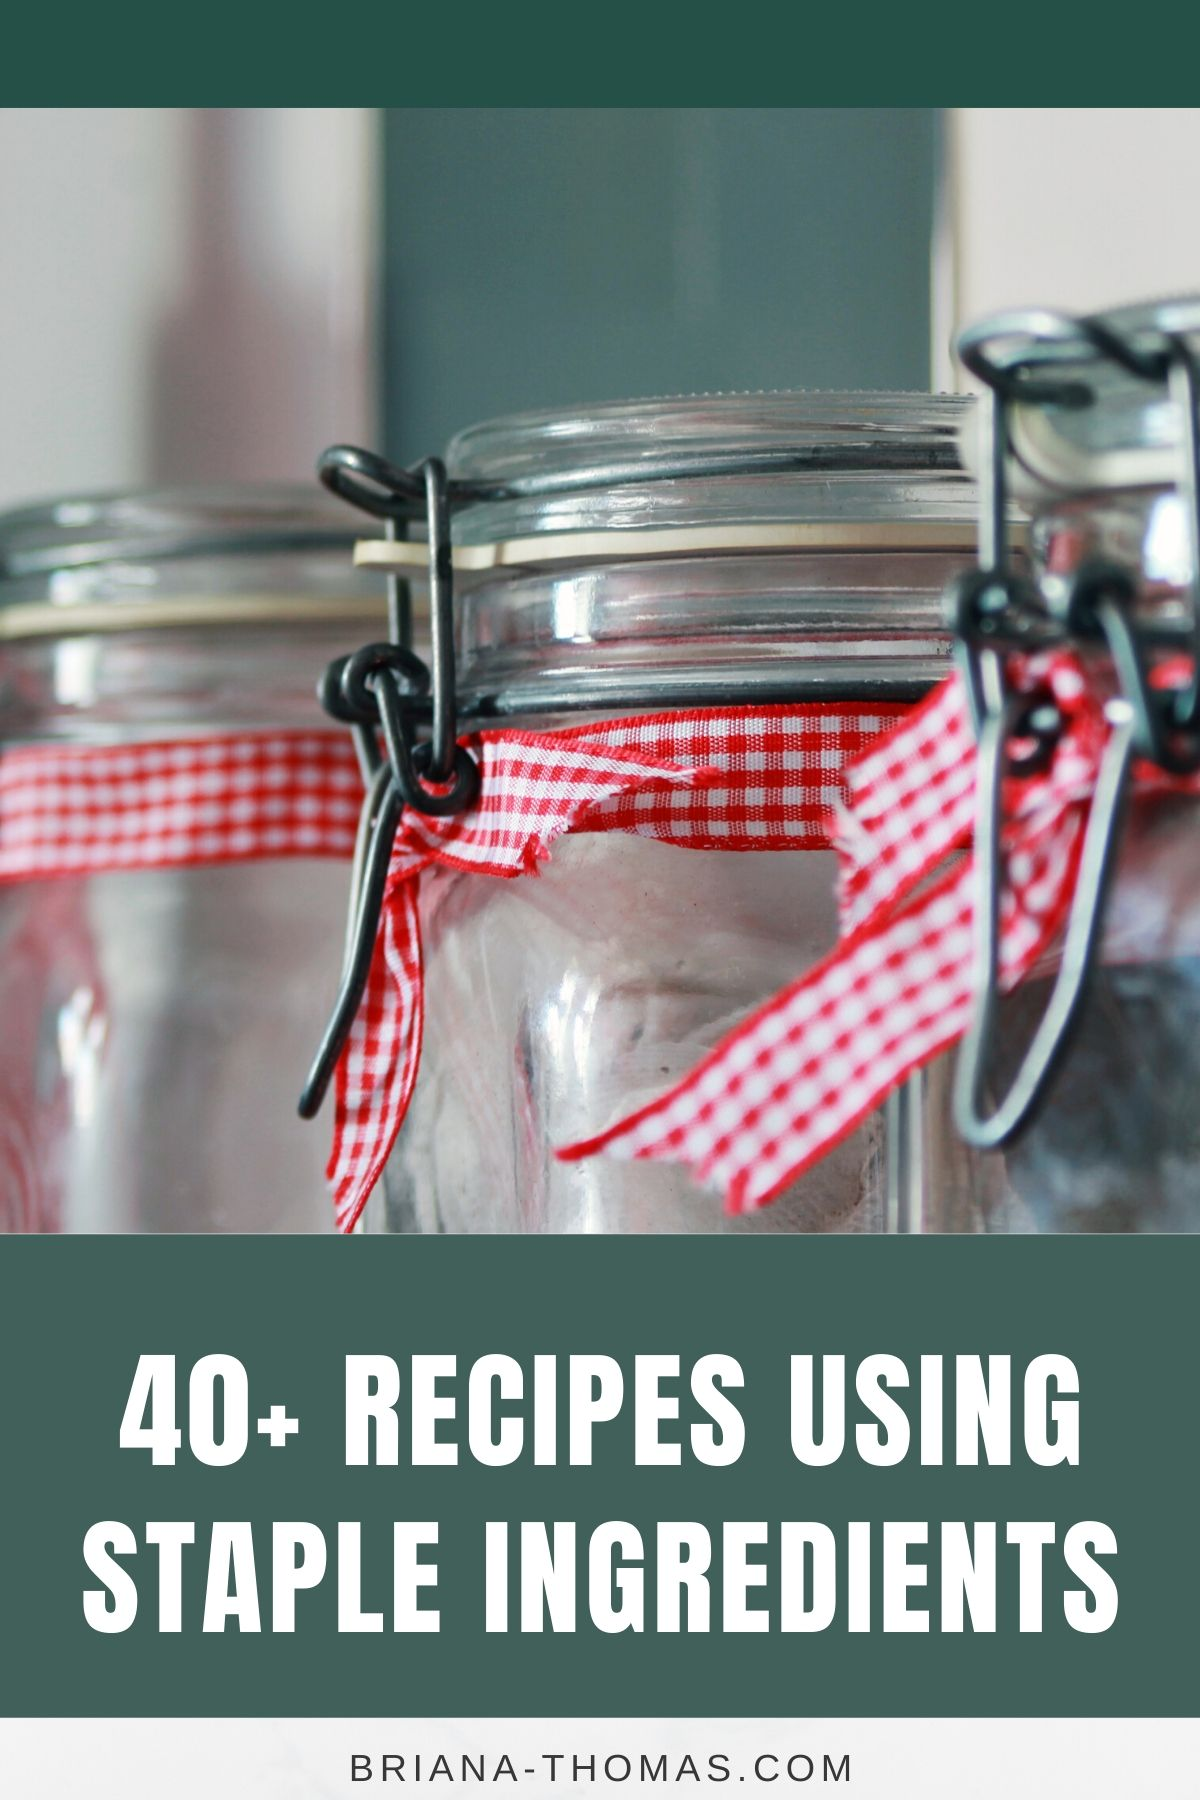 Here's a list of 40+ recipes using staple ingredients - all Trim Healthy Mama (THM) friendly! Beans, rice, canned goods, frozen meats, root veggies, etc.